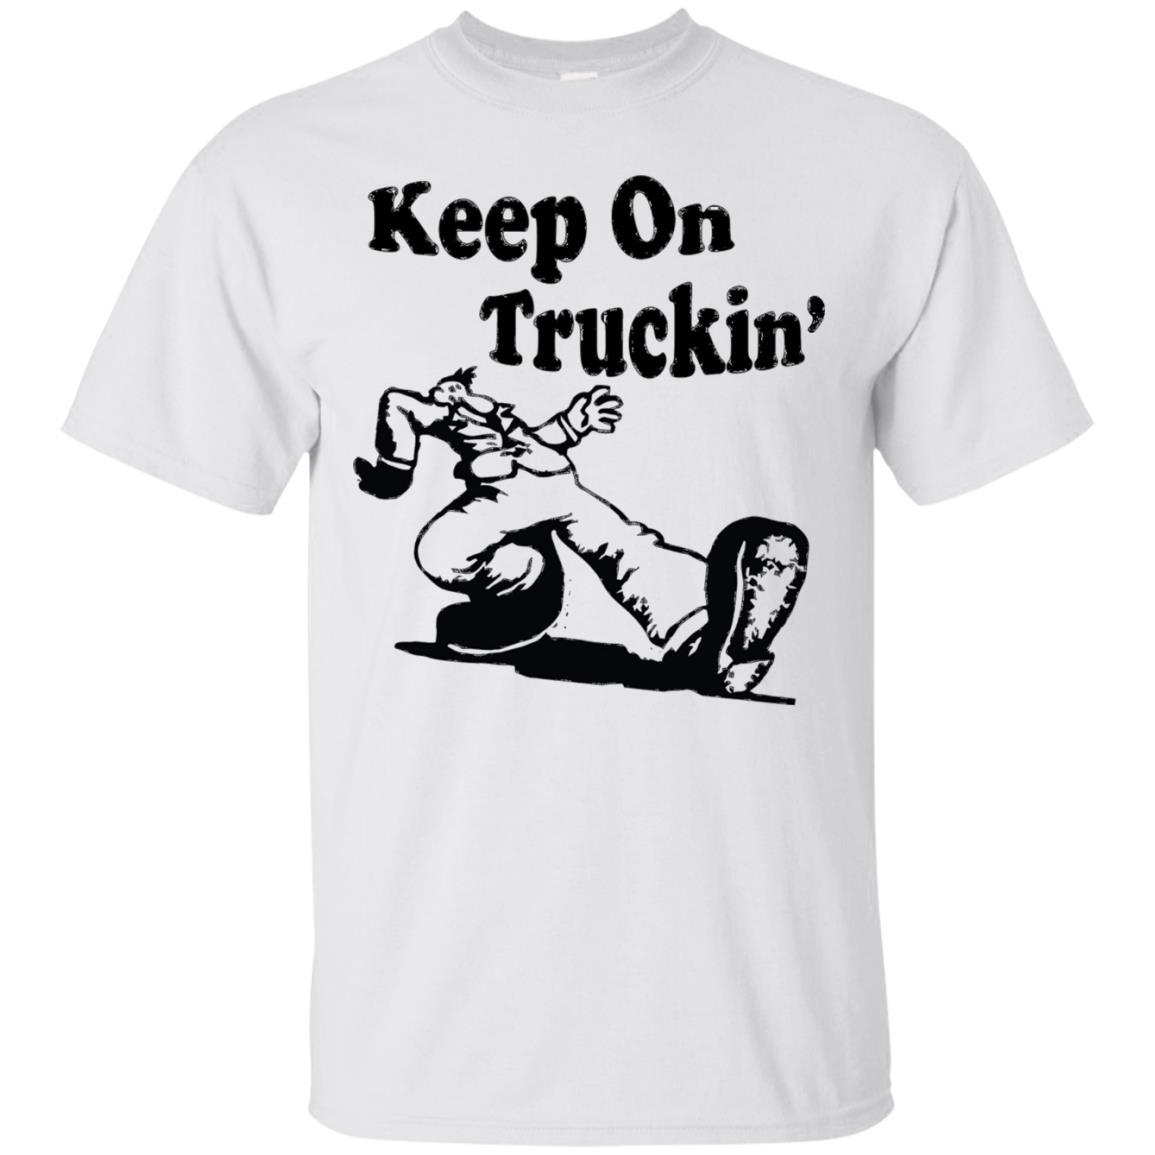 Iconic Keep On Truckin' Tshirt White / 5XL